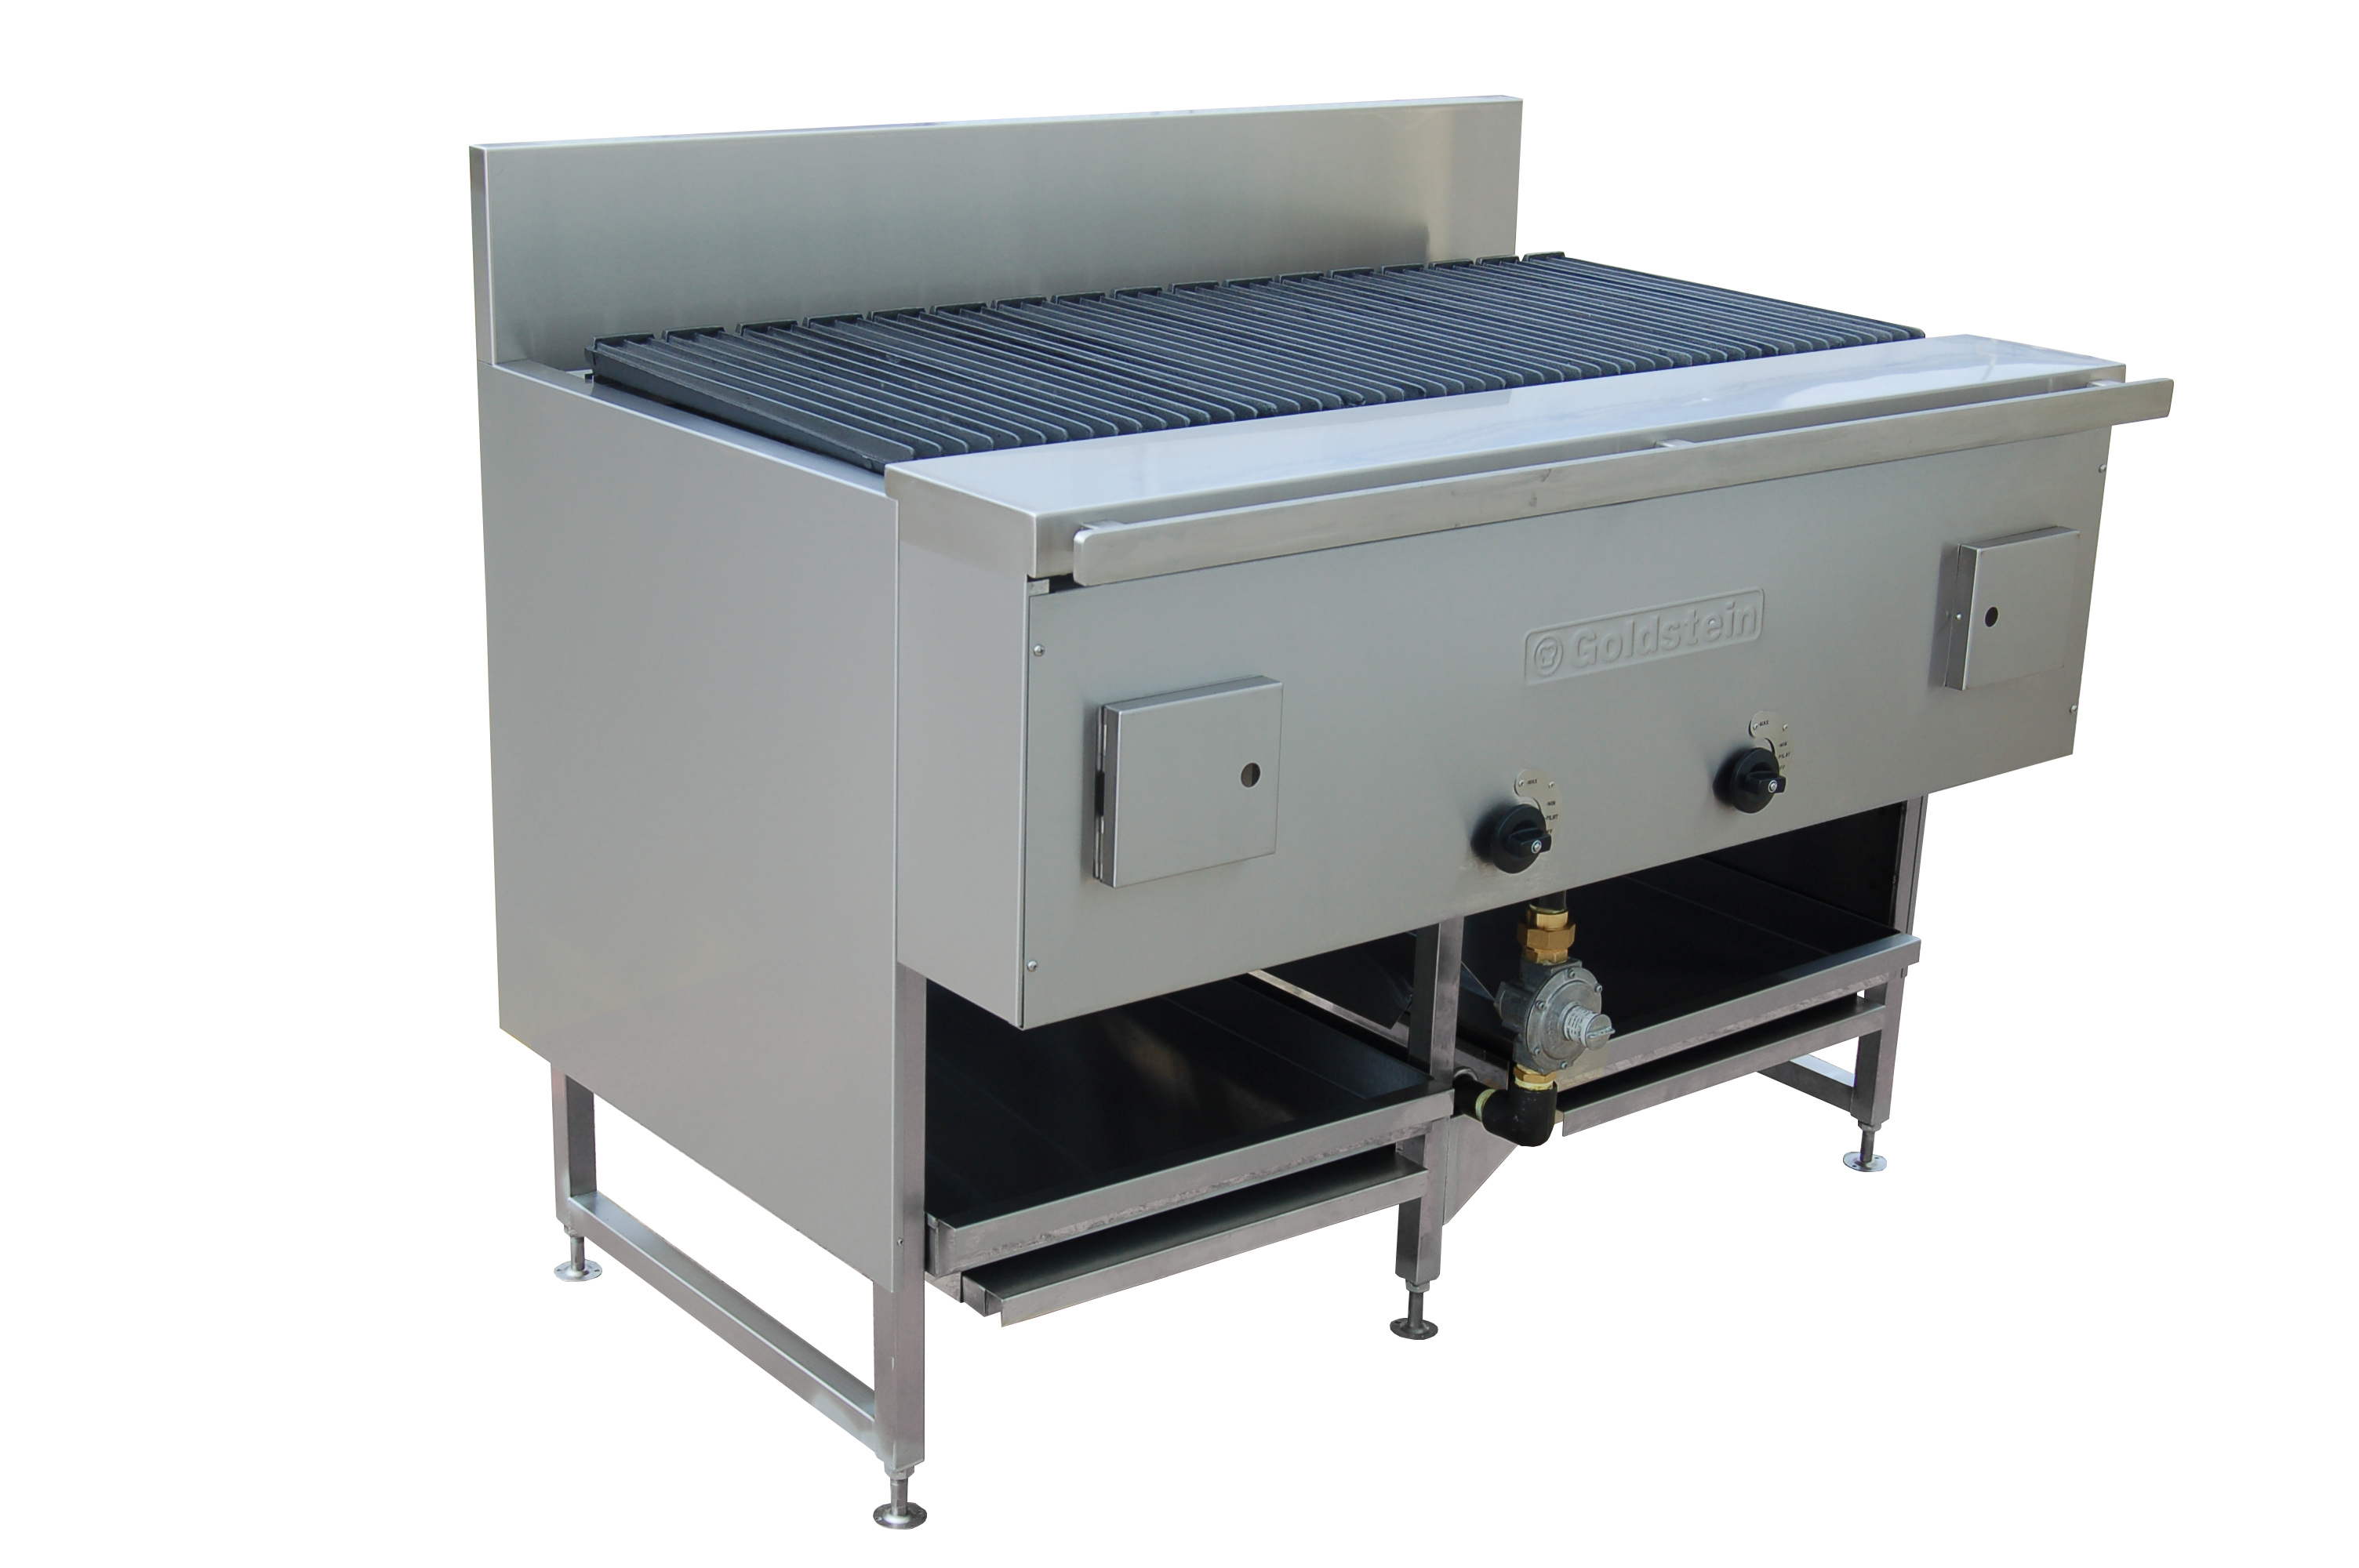 Goldstein 800 series 1220mm Wide Gas CharGrill